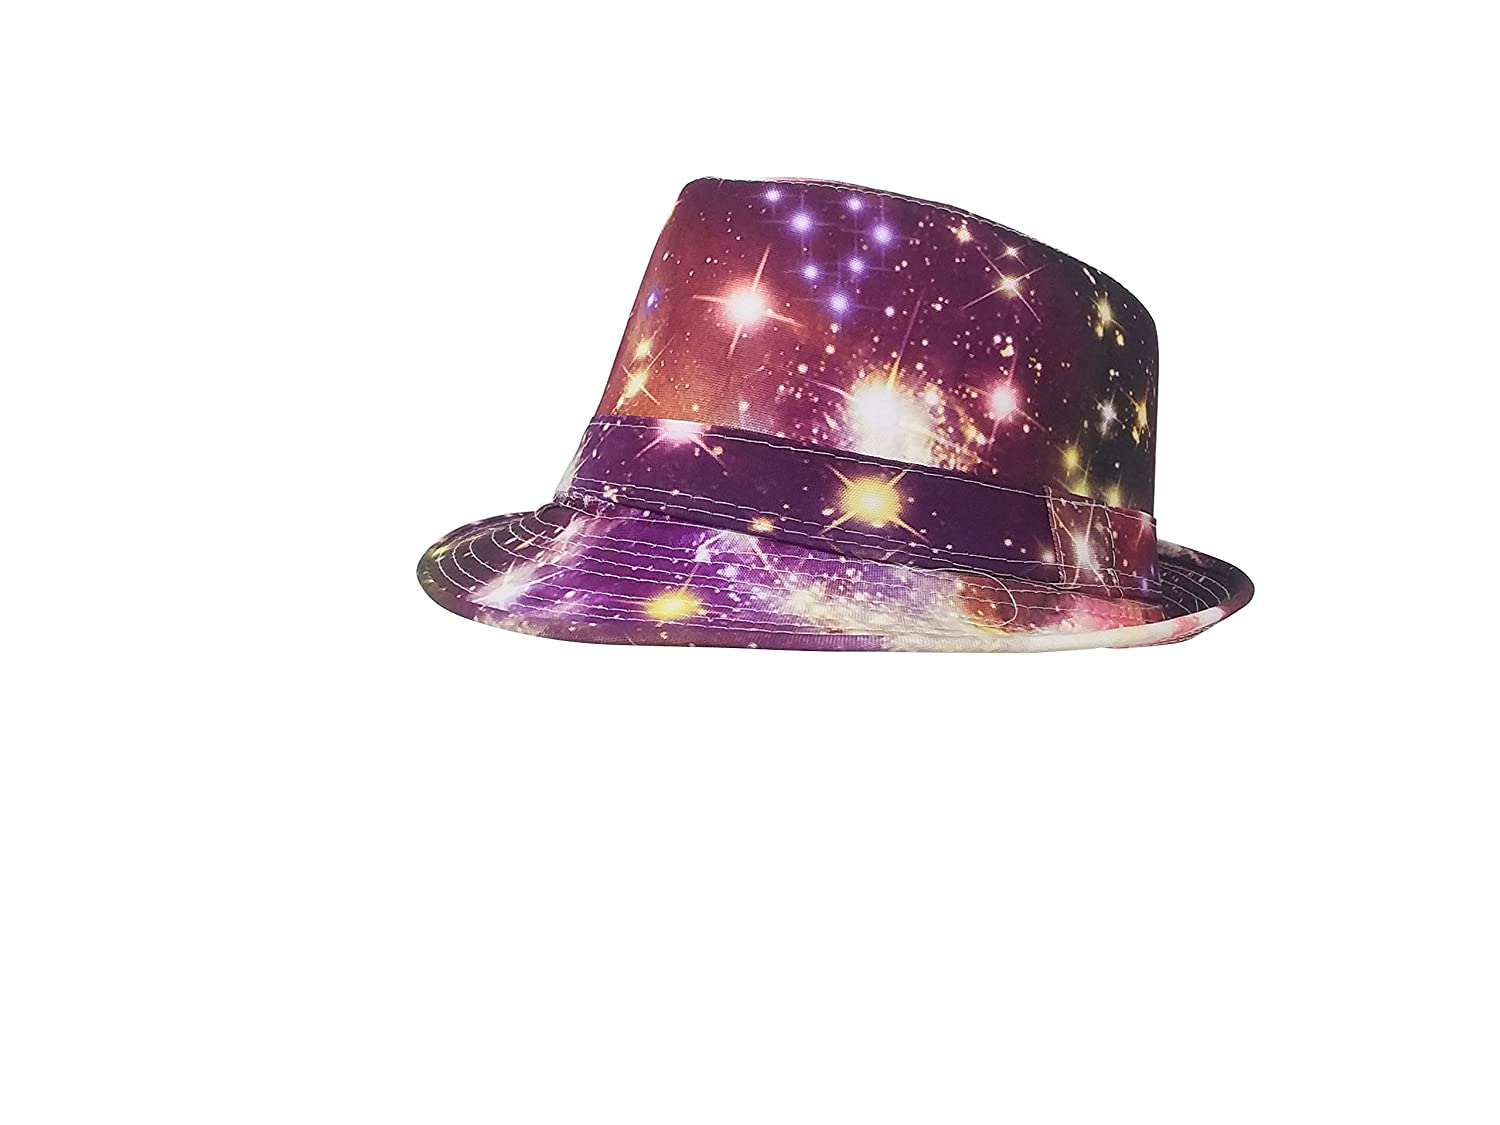 Chachlili 40 Hollywood Lights Fun Fedoras Lightweight Classic Hat Assorted Styles Wholesale Bulk LOT